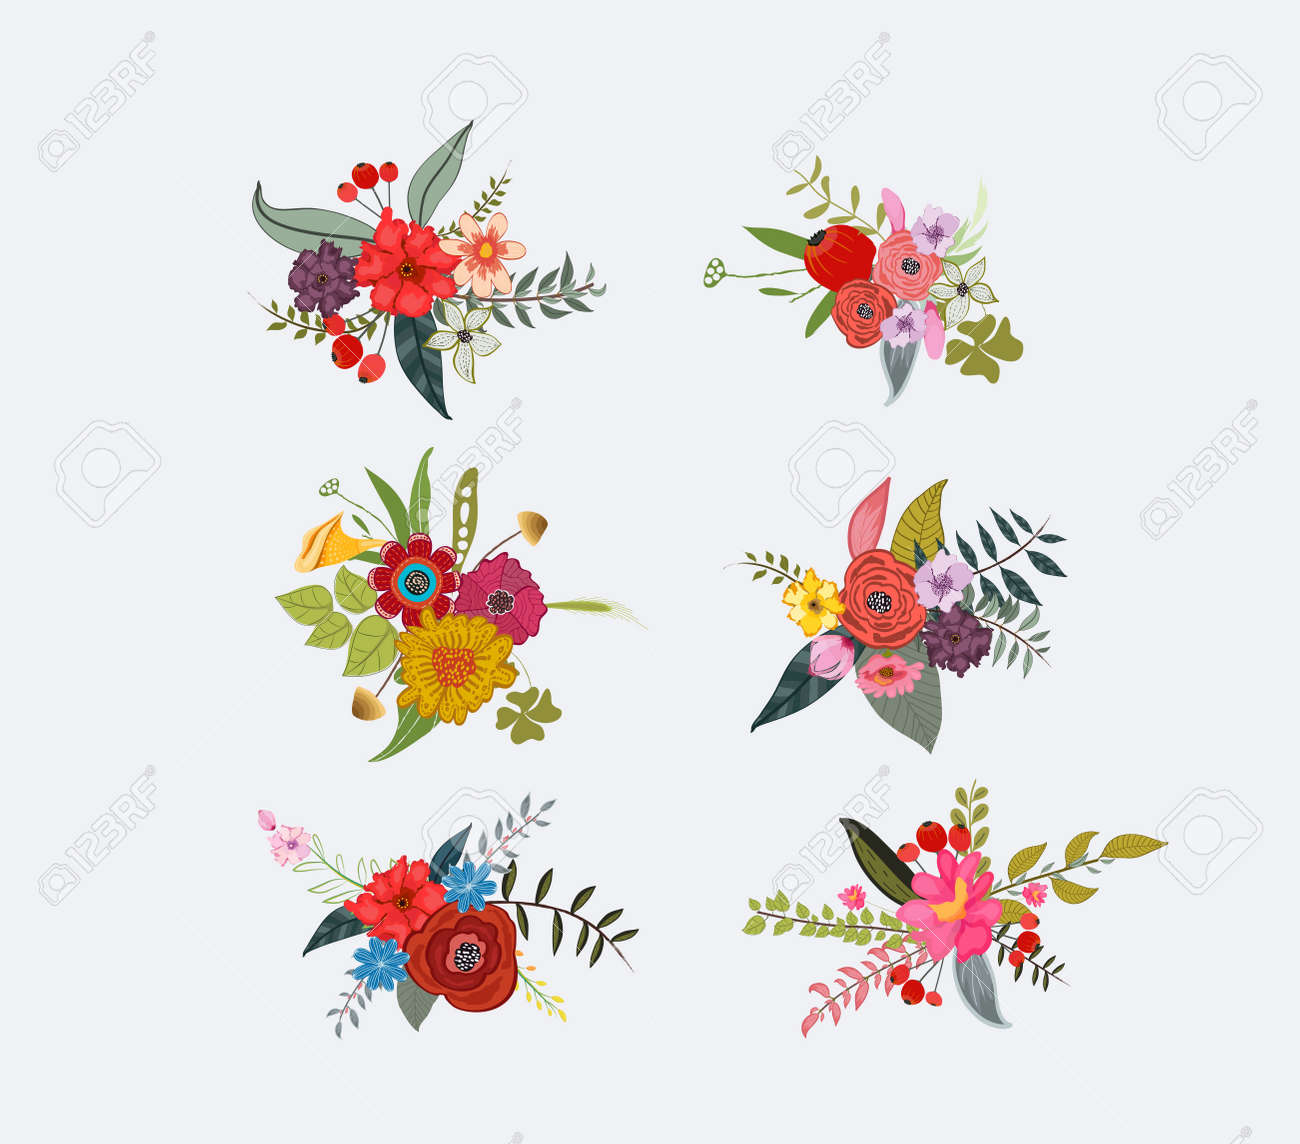 Spring floral clusters flower wreaths bouquets elements royalty spring floral clusters flower wreaths bouquets elements stock vector 57972405 mightylinksfo